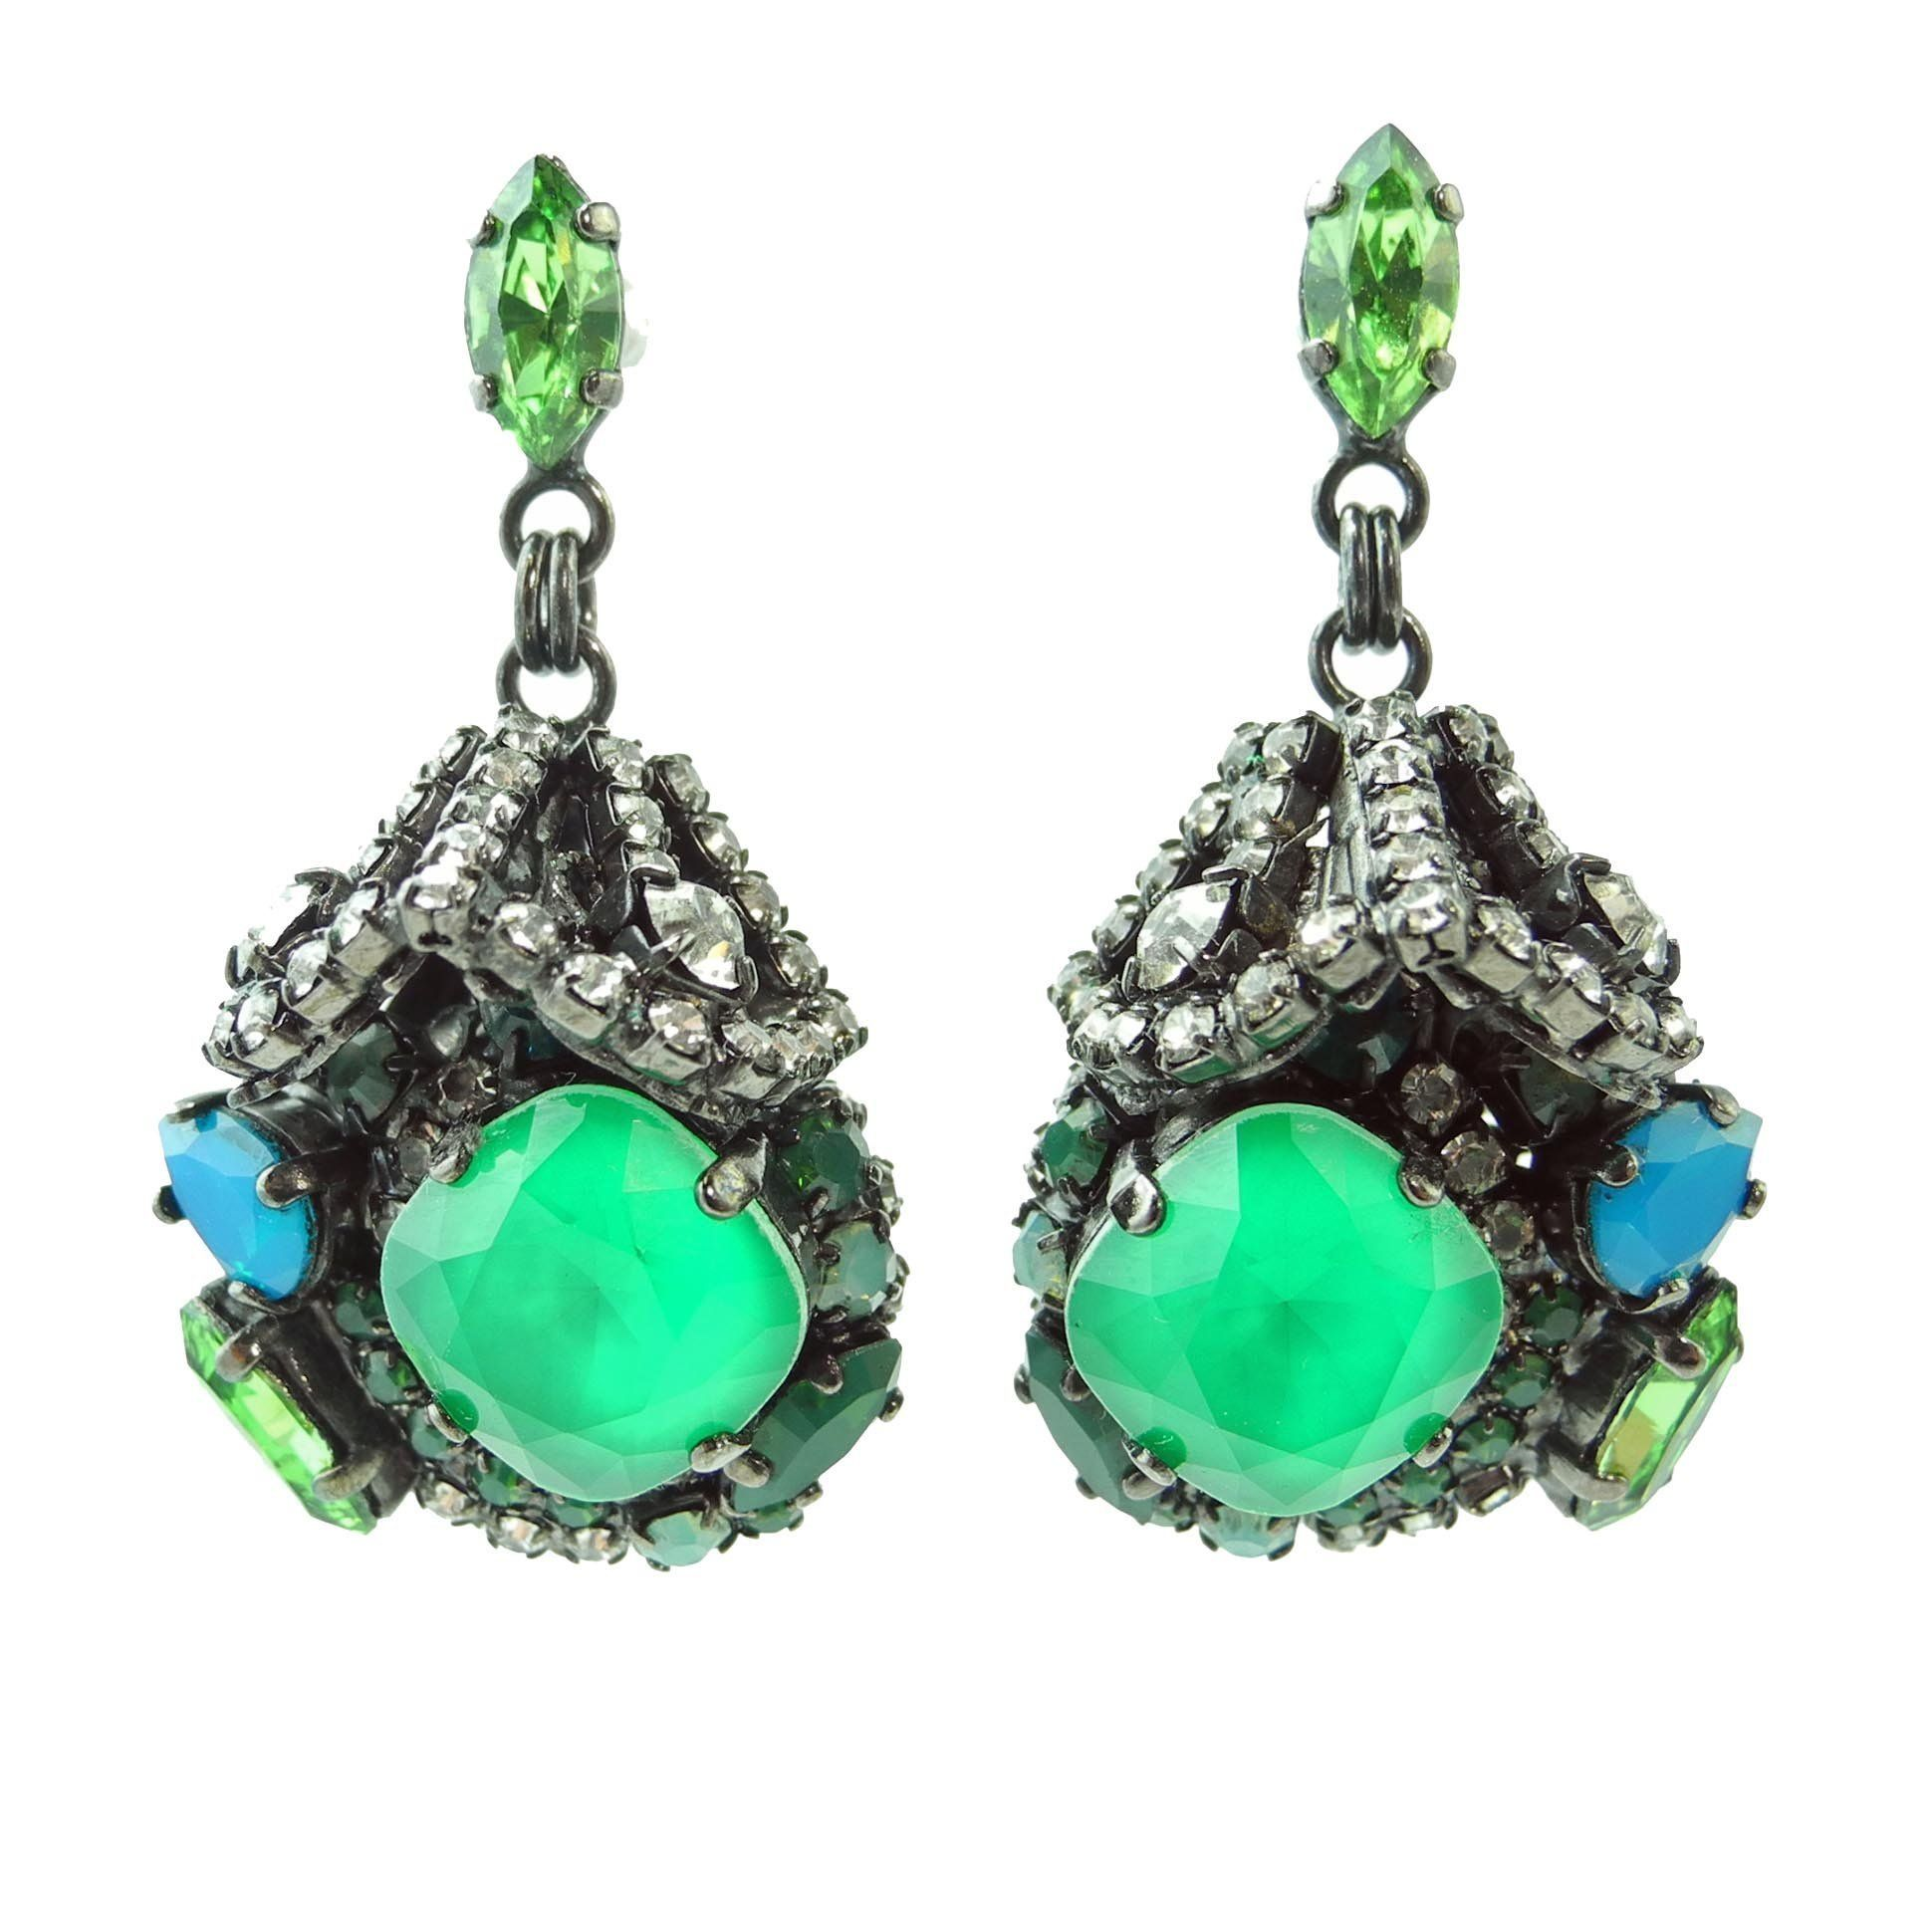 1941e3412 Bosa Nova Earrings Green | Products | Jewelry, Earrings, Emerald ...